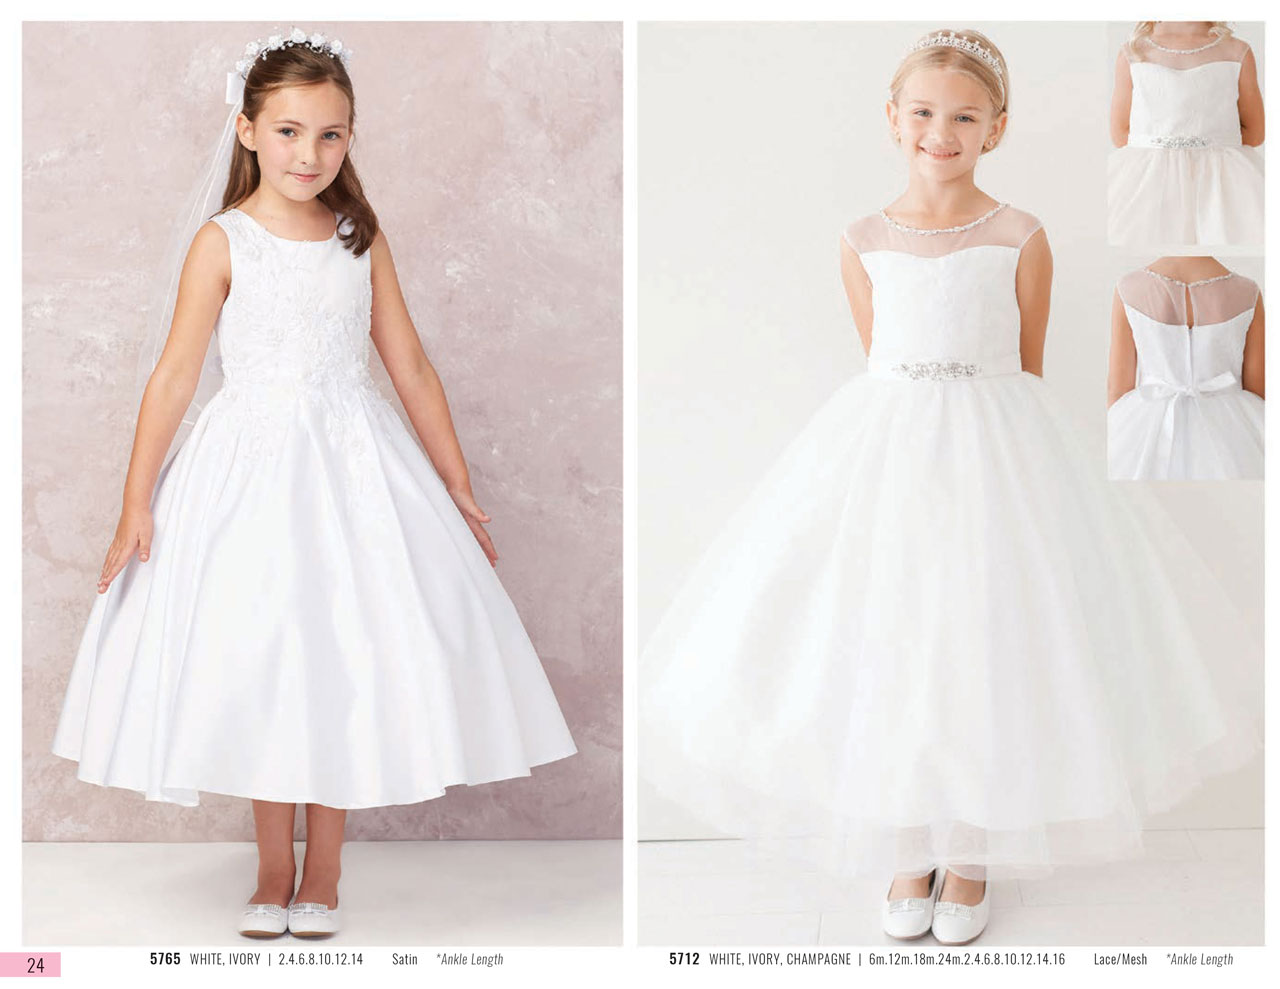 allure bridal gowns | Kids & Mother Gowns and Dresses